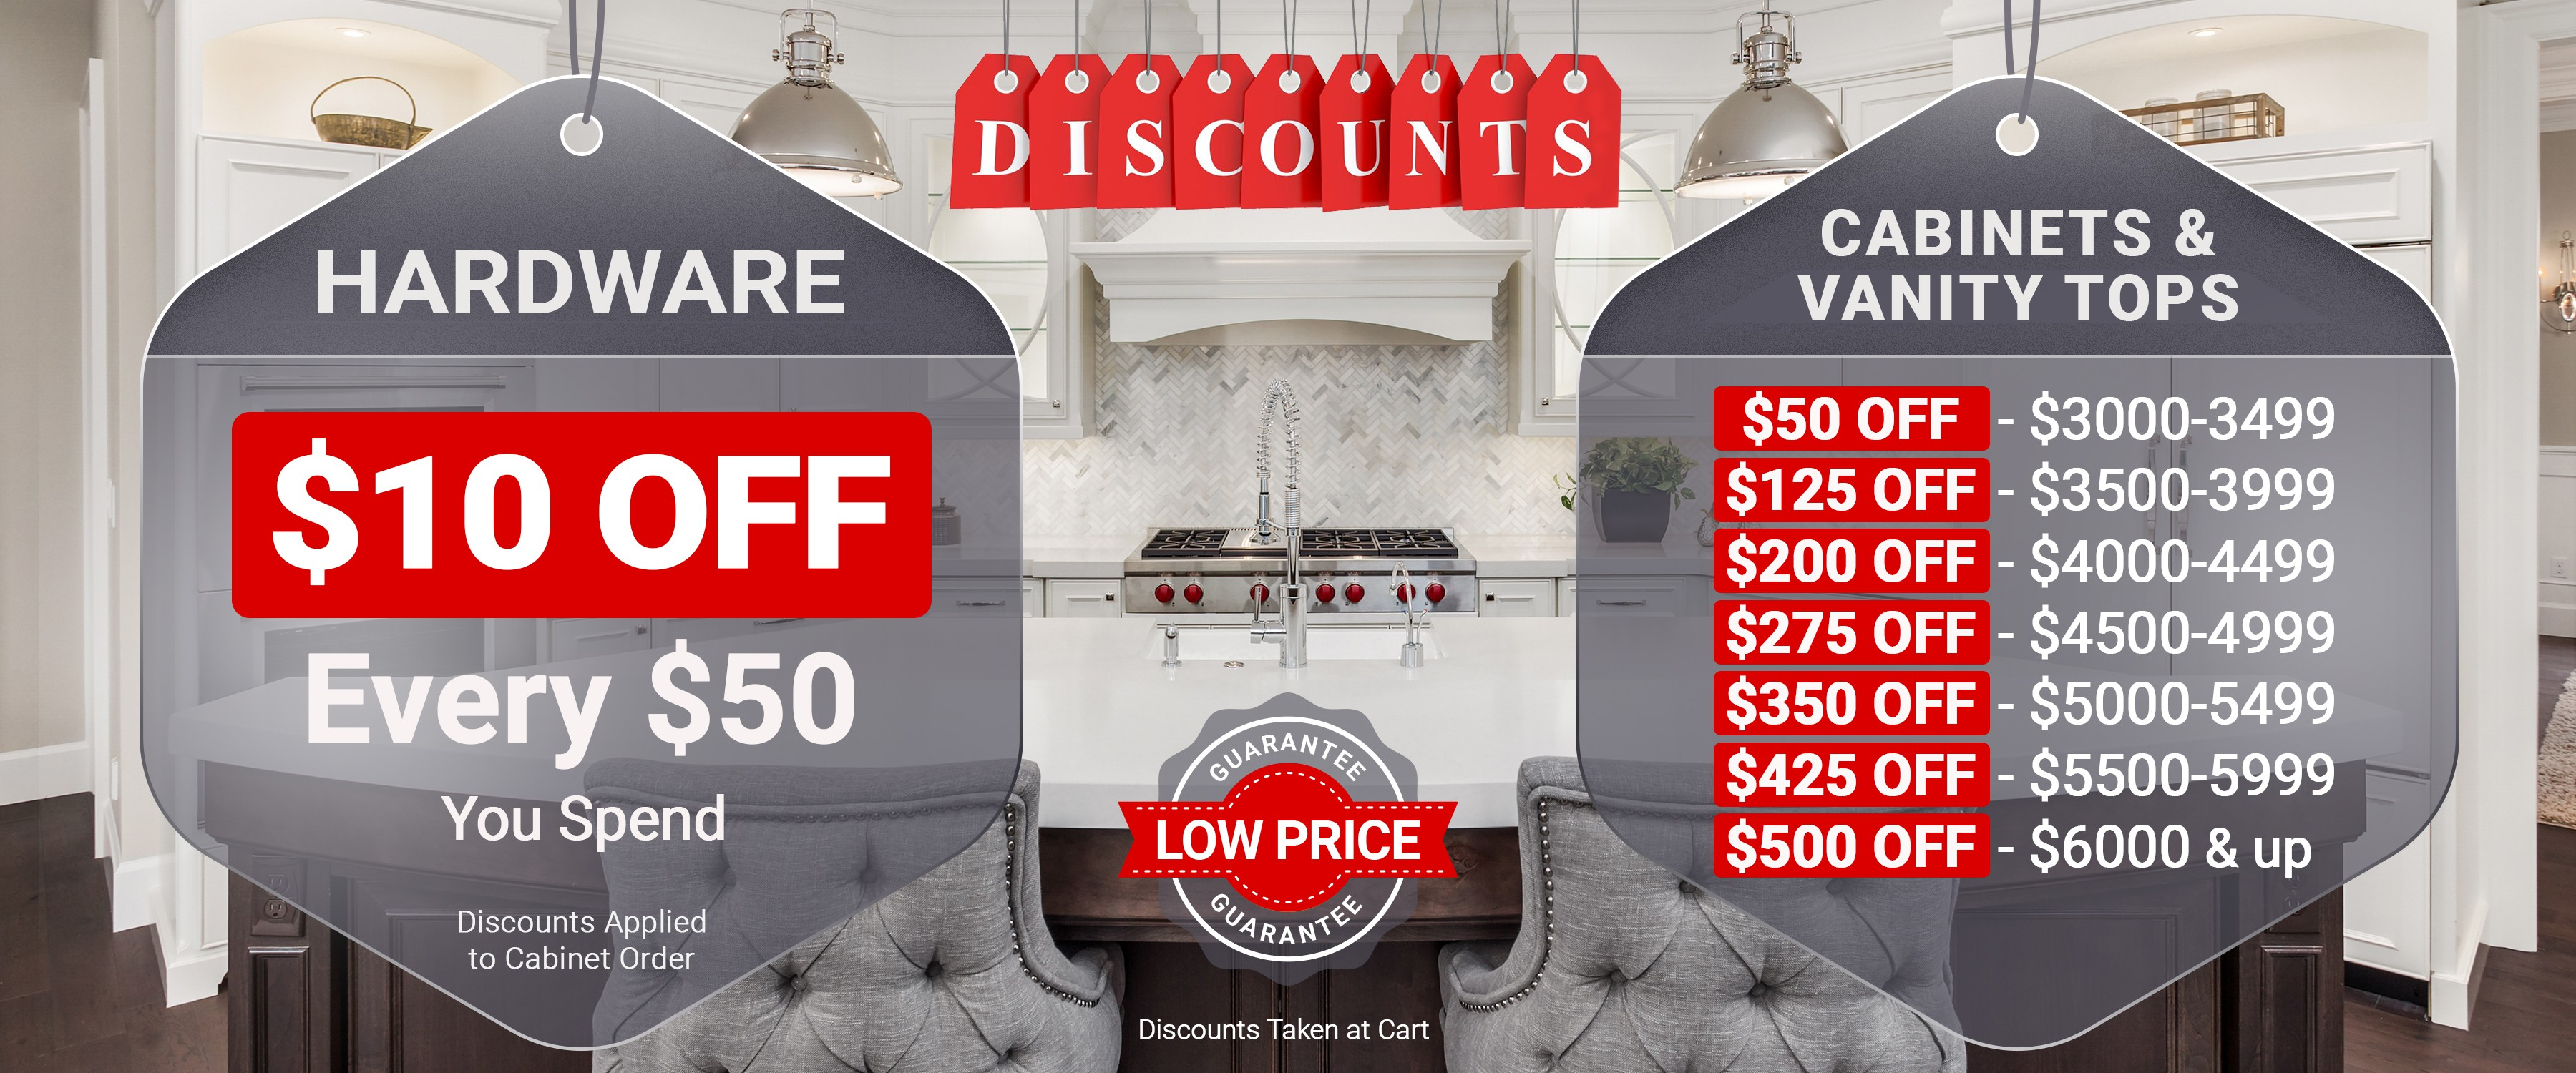 Catchy discount banner for kitchen cabinet site.